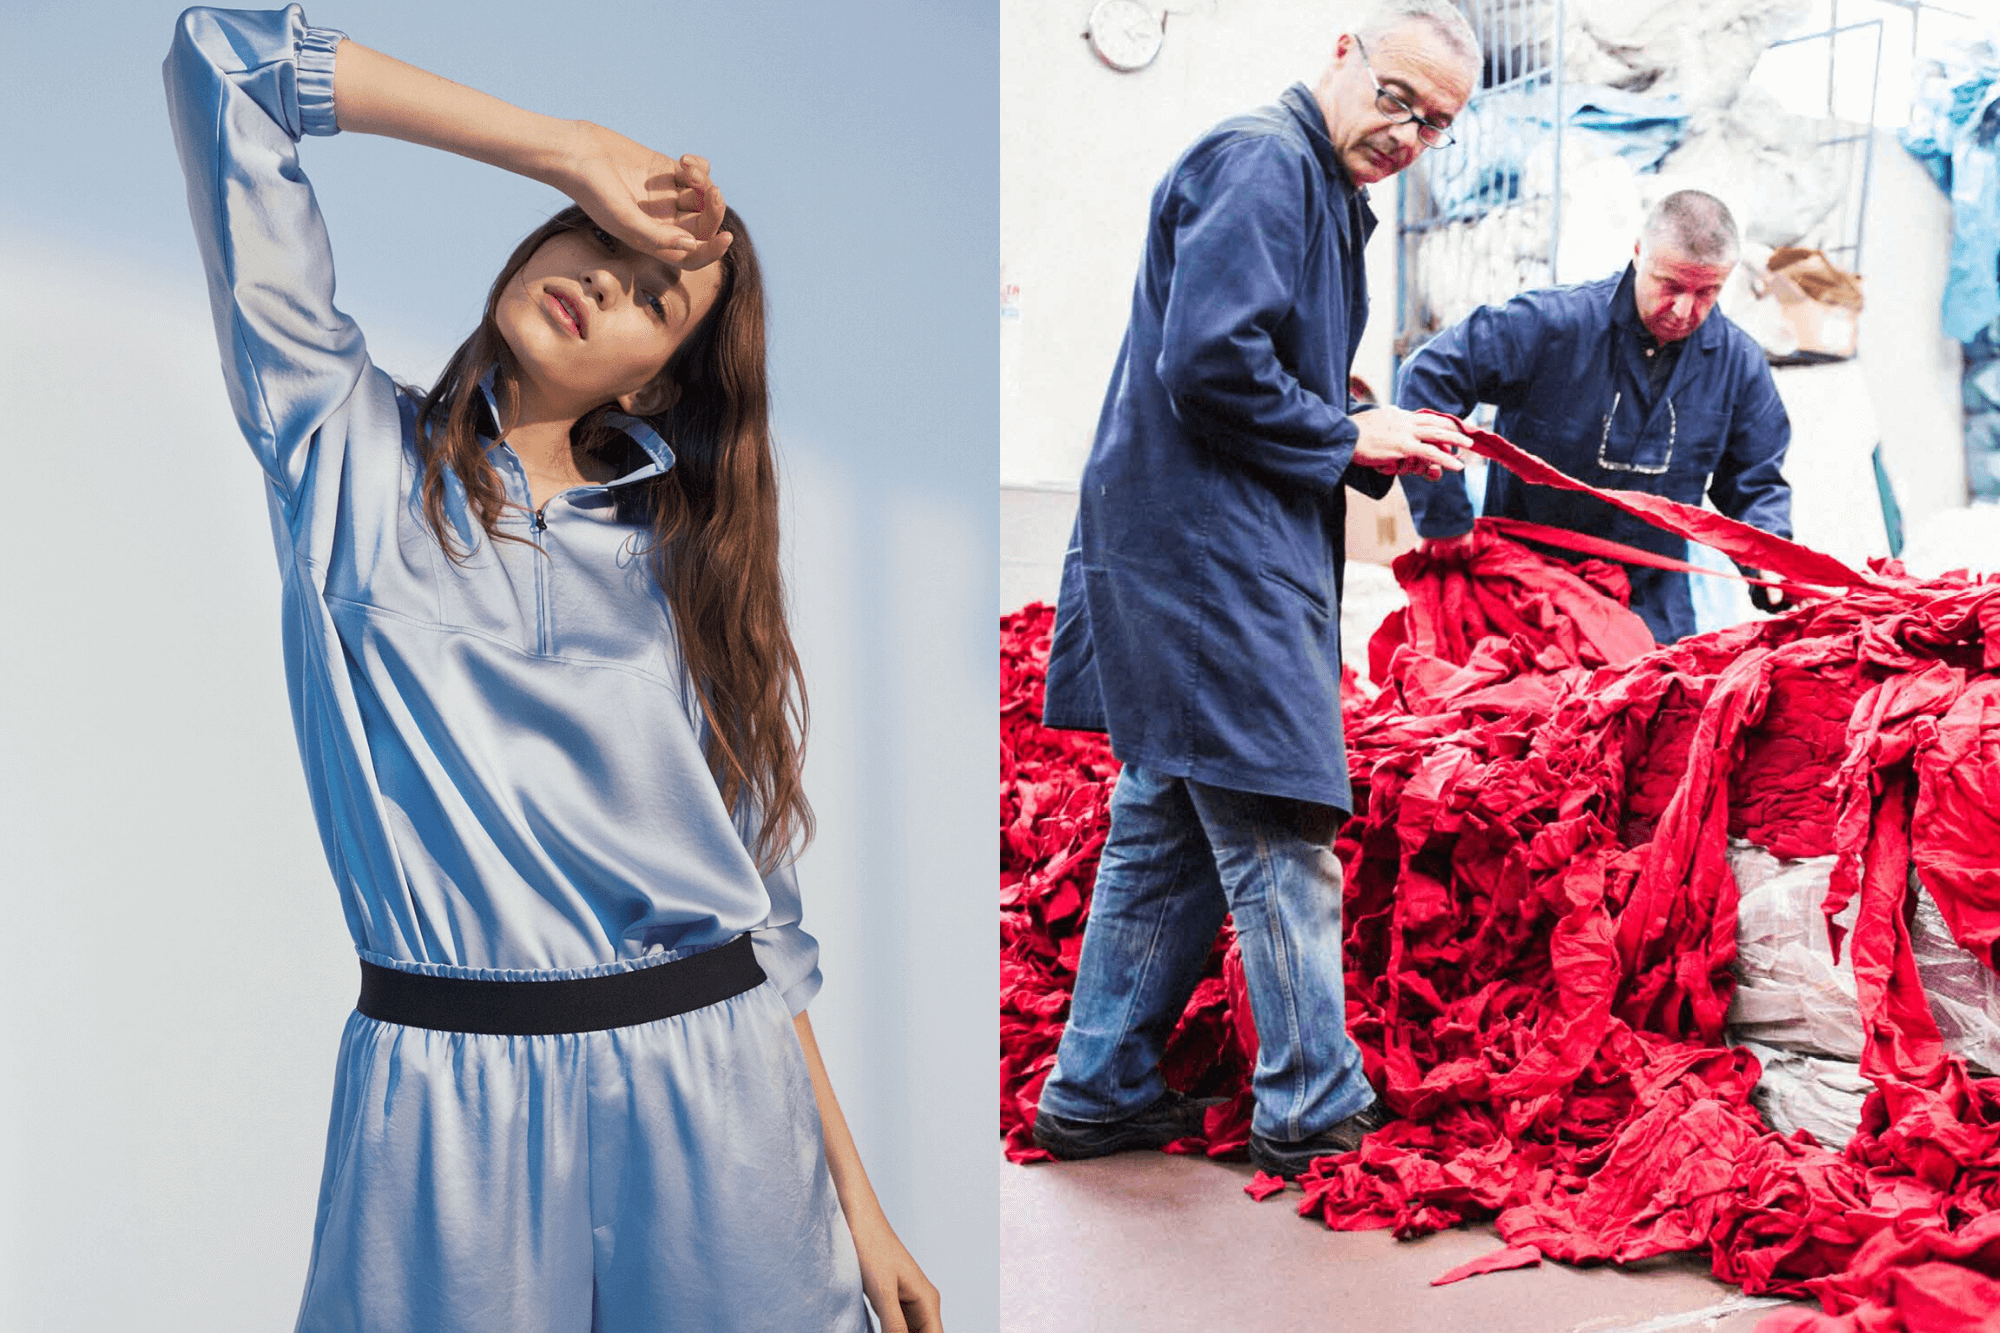 Why is ethical fashion?